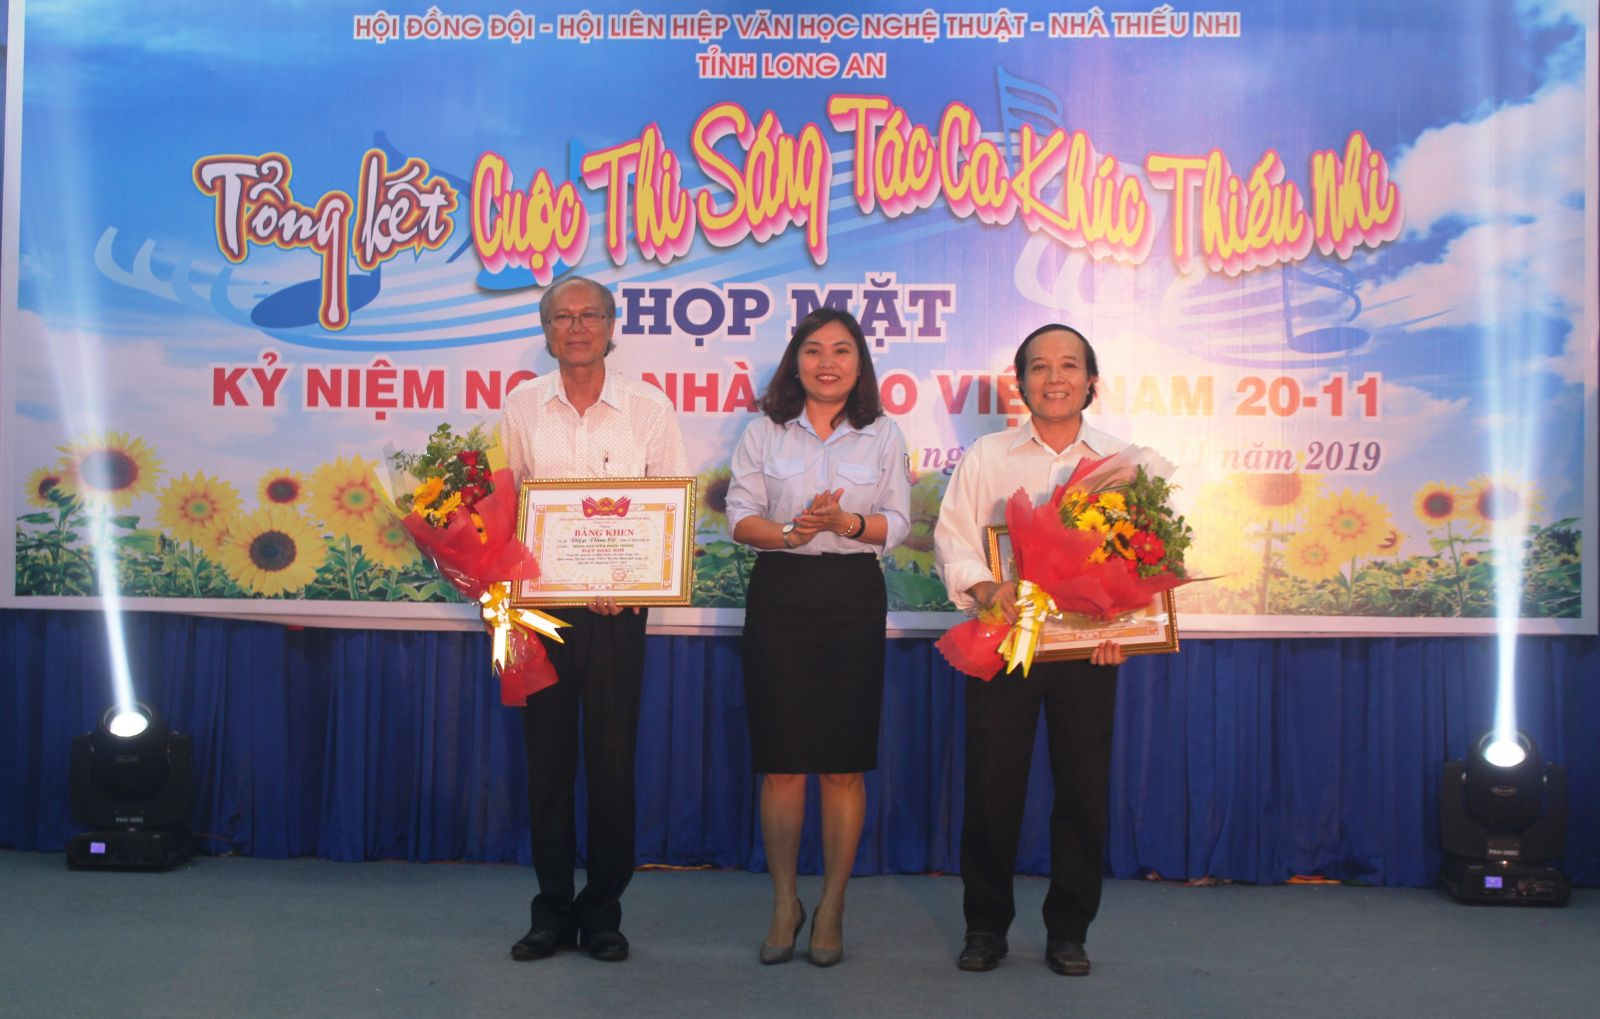 Deputy Secretary of the Provincial Youth Union and Chairwoman of Long An Provincial Council for Ho Chi Minh Children's Organization - Le Thi Cam Tu presents prizes to 2 second-prize winners.